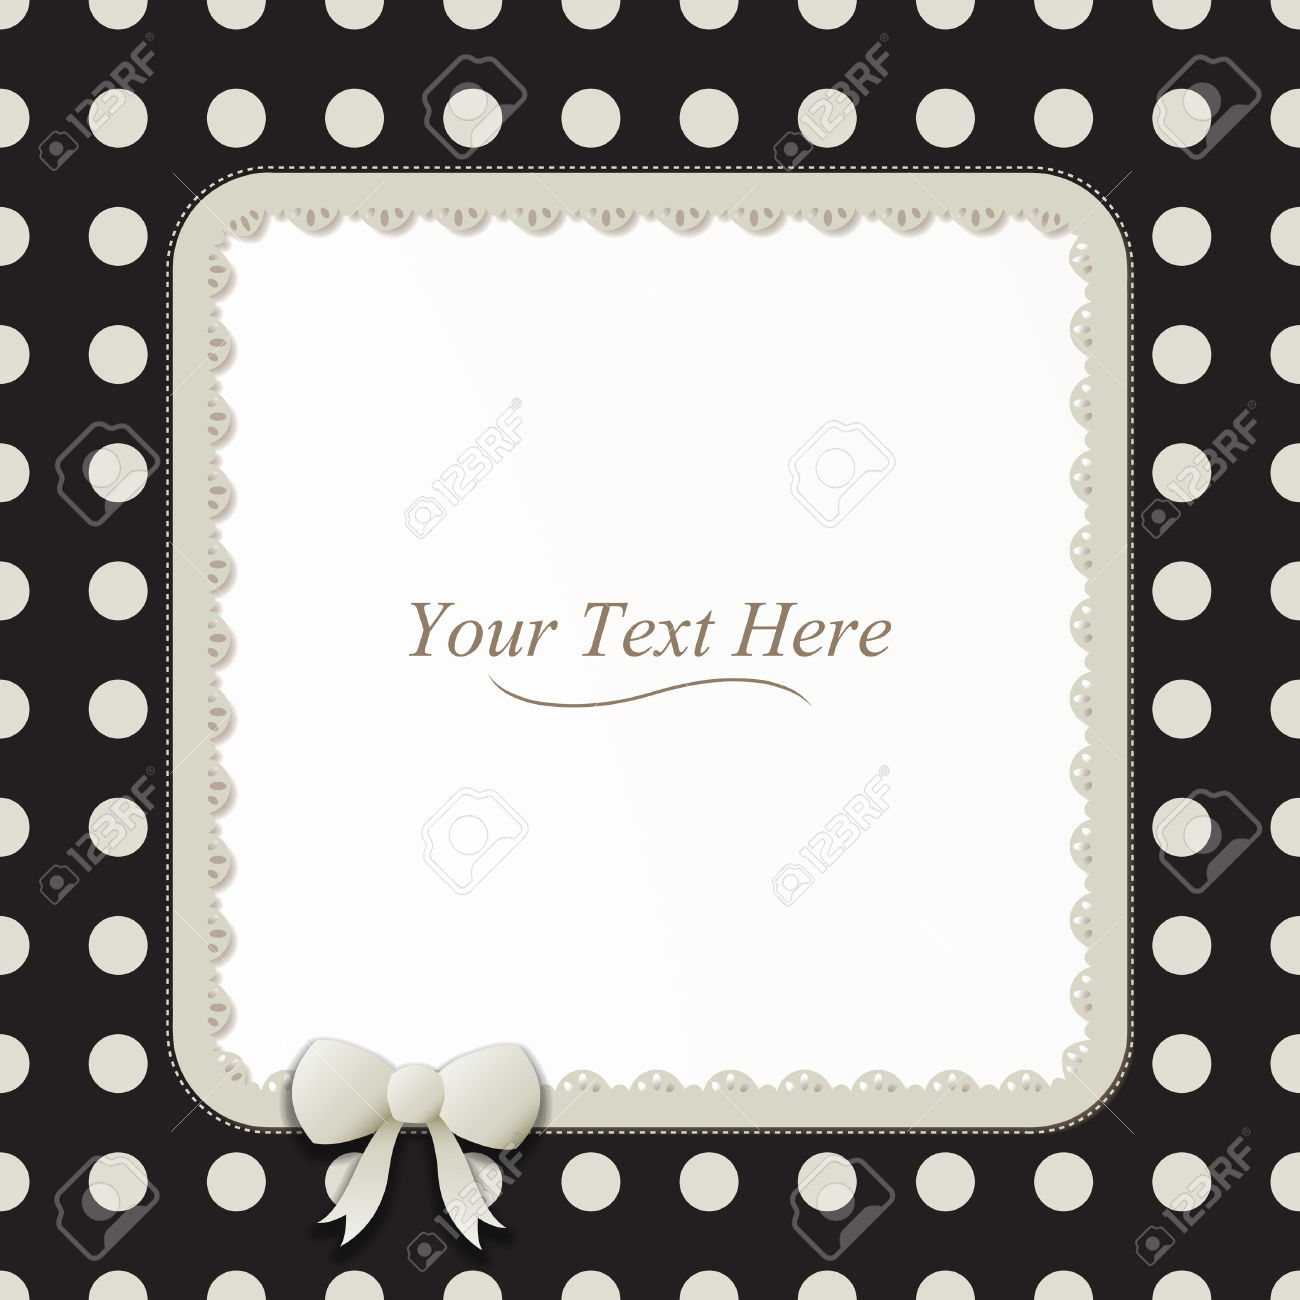 A Cute Black And White Polka Dot Square Frame Accented With A.